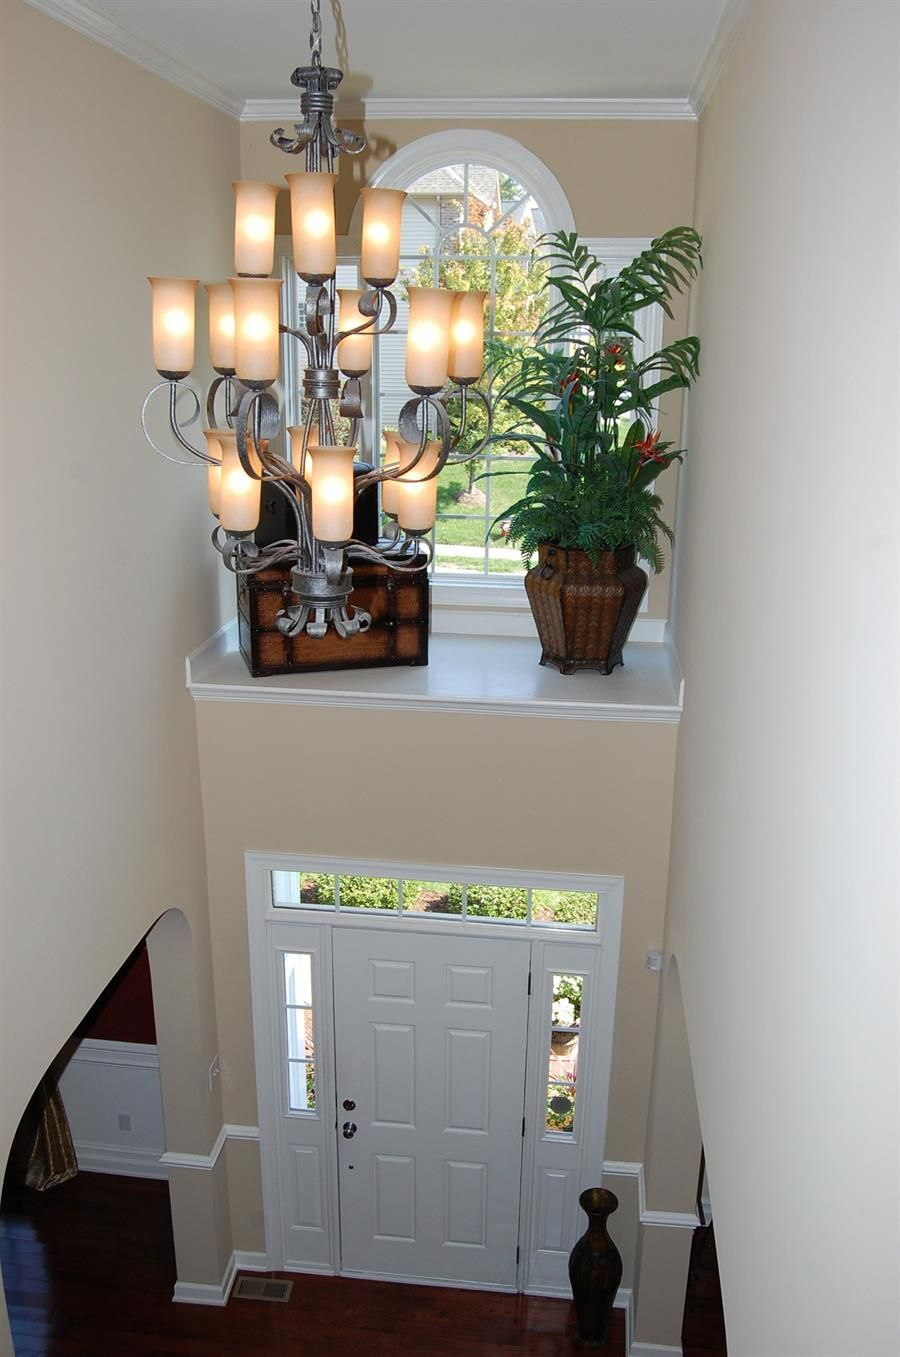 Foyer Door Decor : Two story foyer with shelf above door window what